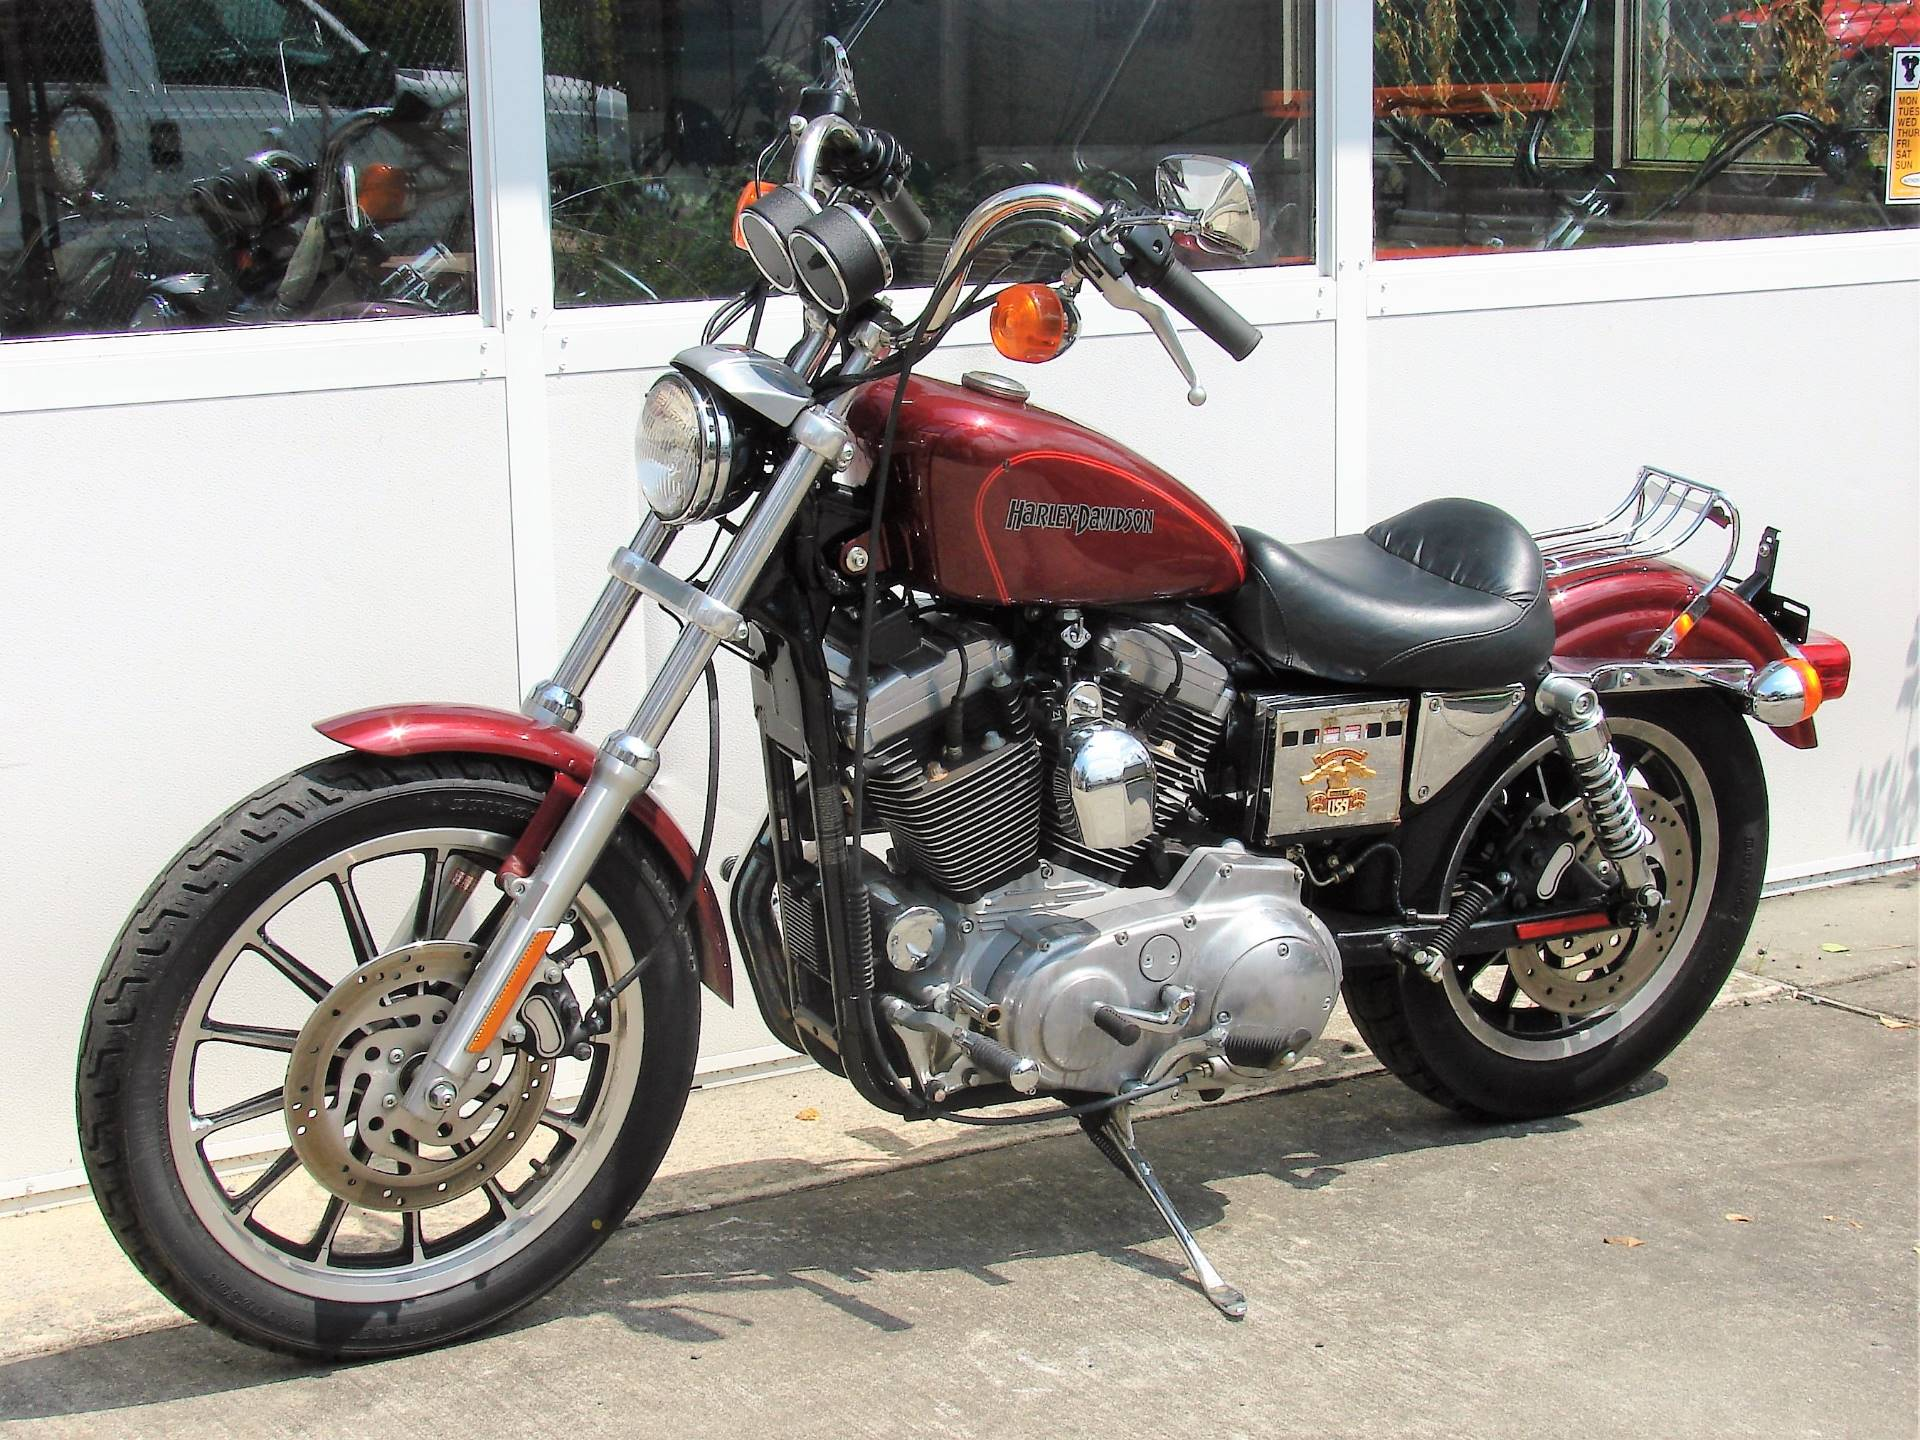 2001 Harley-Davidson XL 1200 Sportster  (EVO) in Williamstown, New Jersey - Photo 10